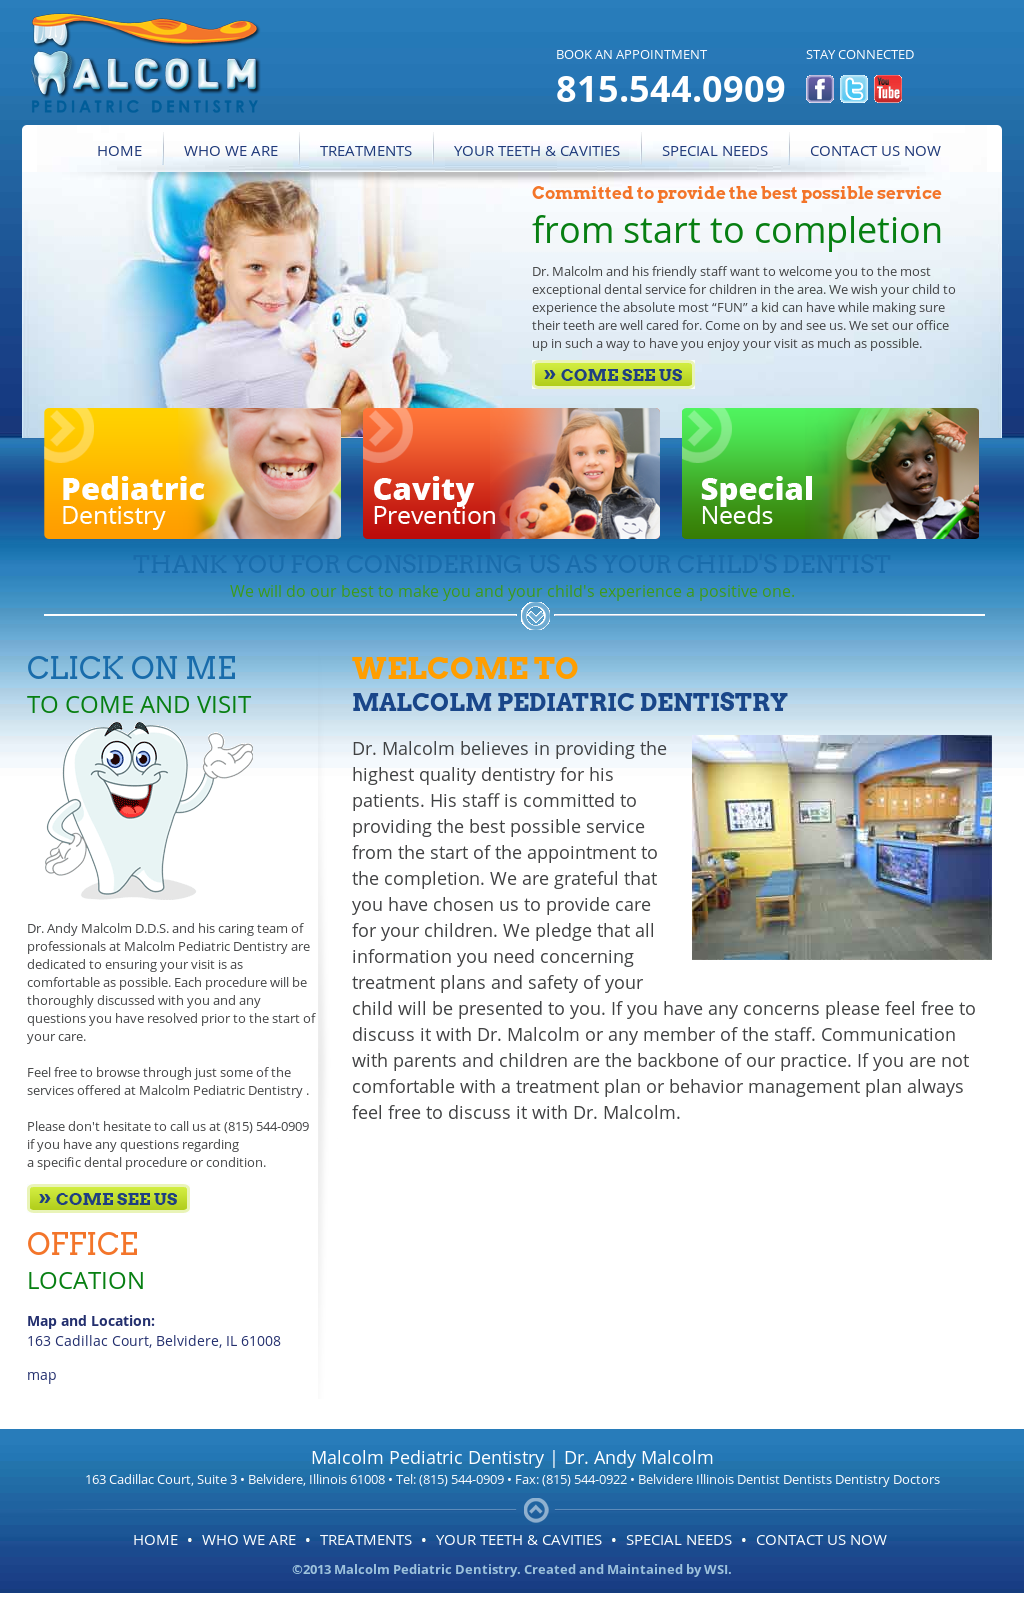 Malcolm Pediatric Dentistry Competitors, Revenue and Employees ...